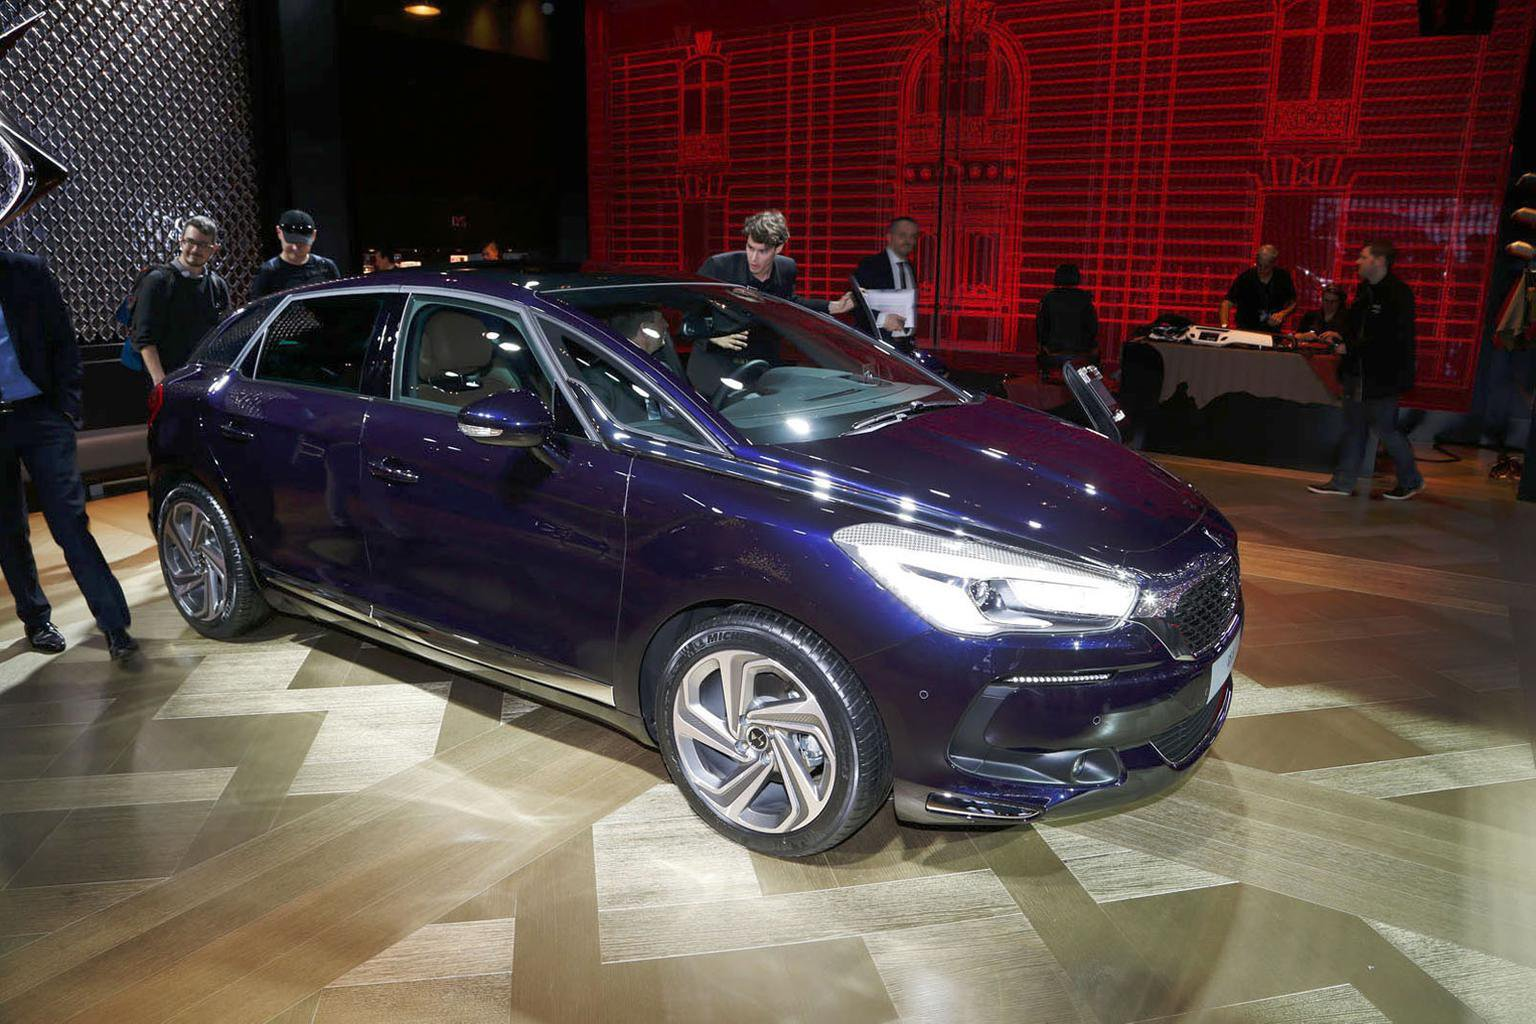 Facelifted Citroen DS5 revealed